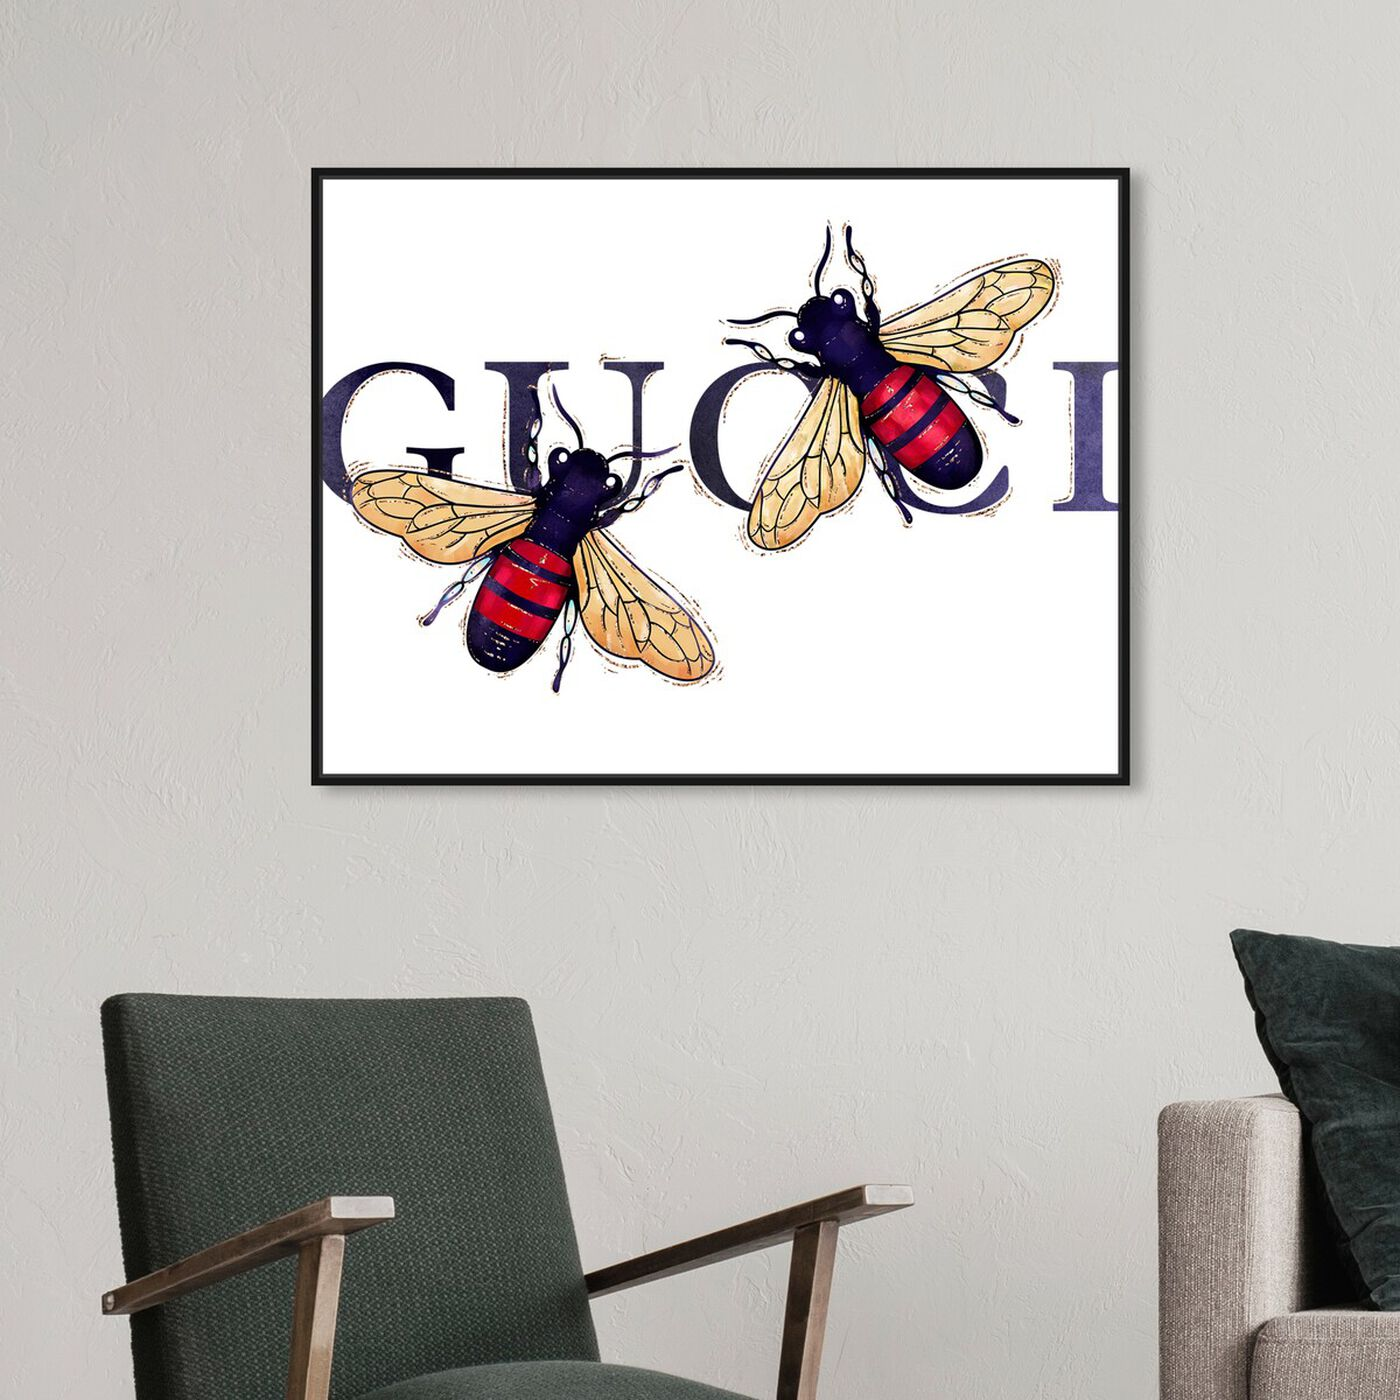 Hanging view of Stylish Bumble Bee Patch featuring fashion and glam and fashion art.